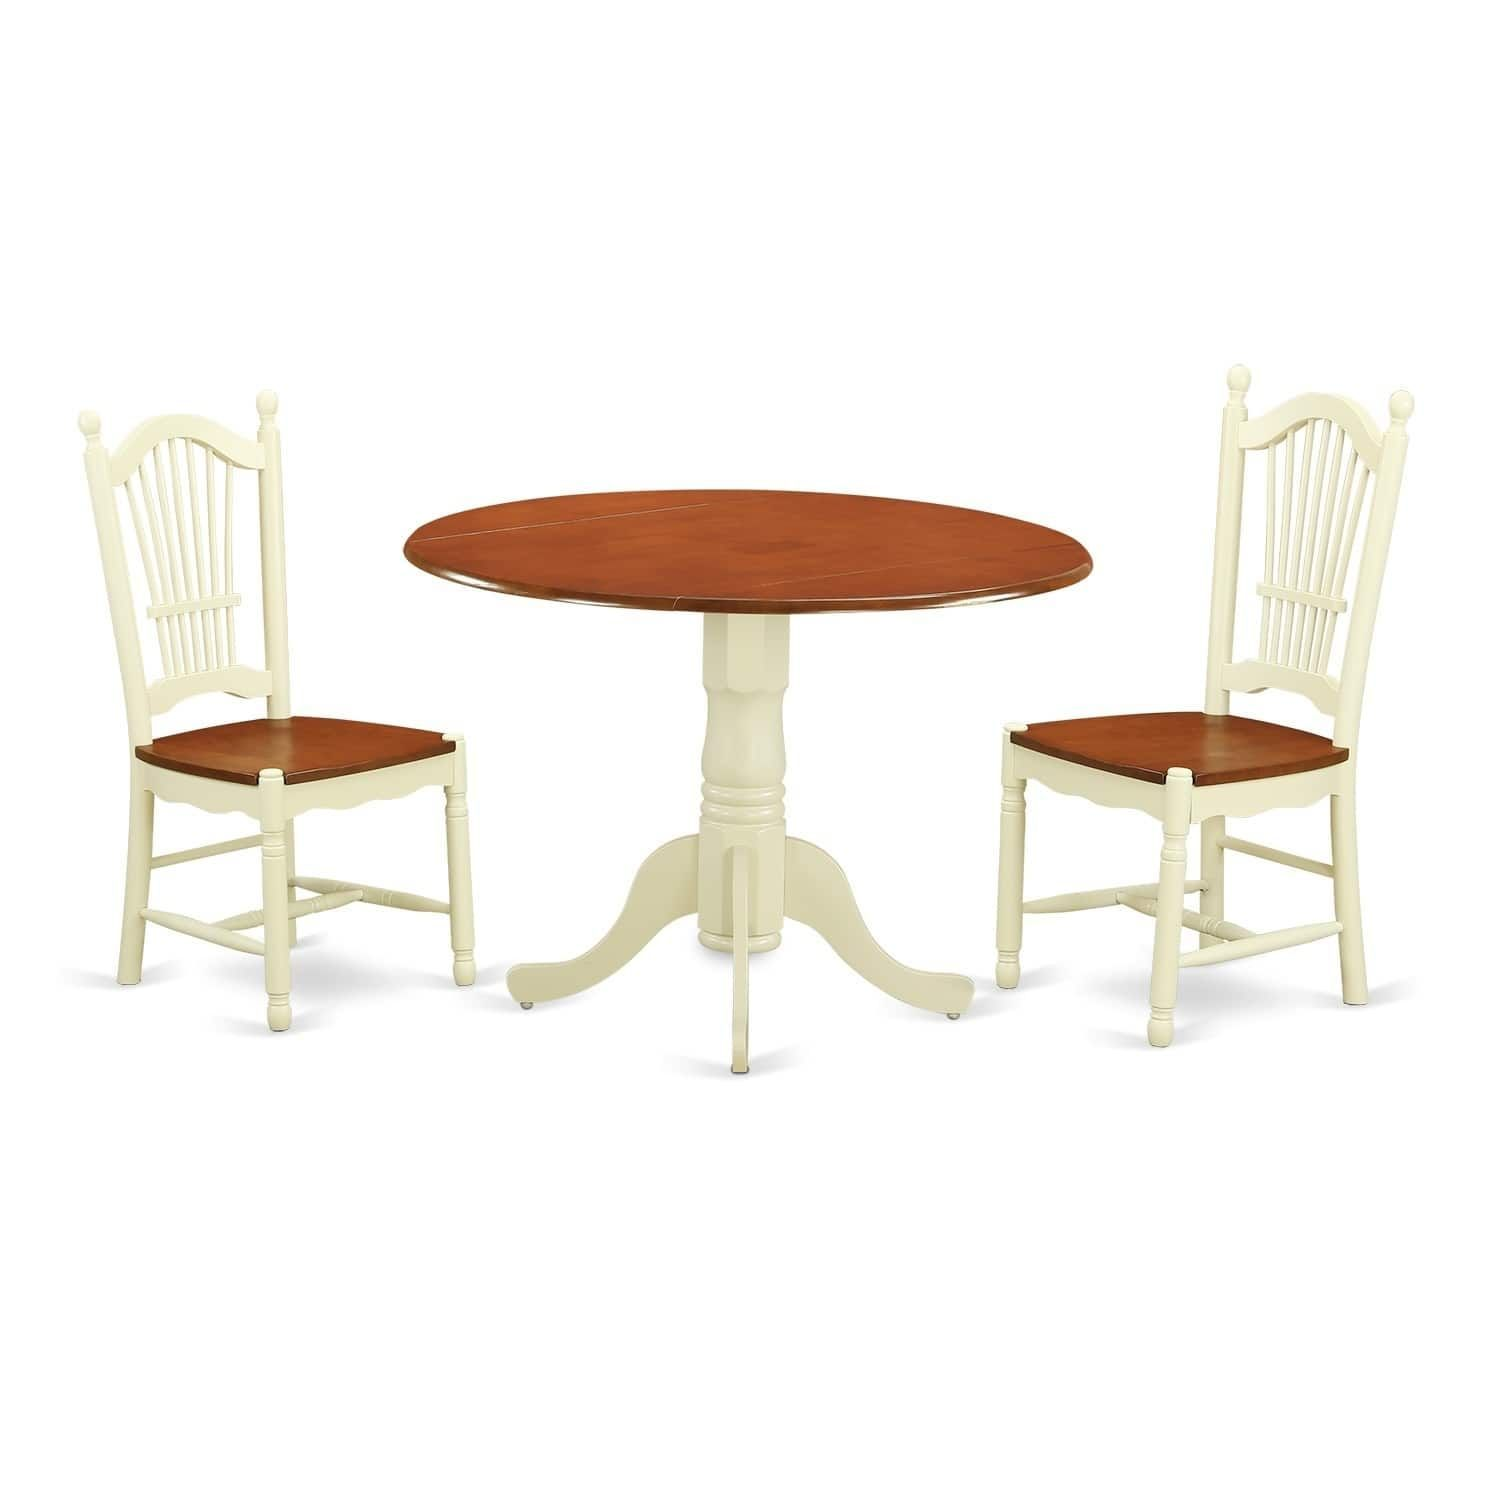 Dldo3W 3 Pc Kitchen Dinette Setkitchen Table And 2 Chairs Custom 2 Chair Dining Room Set Decorating Inspiration